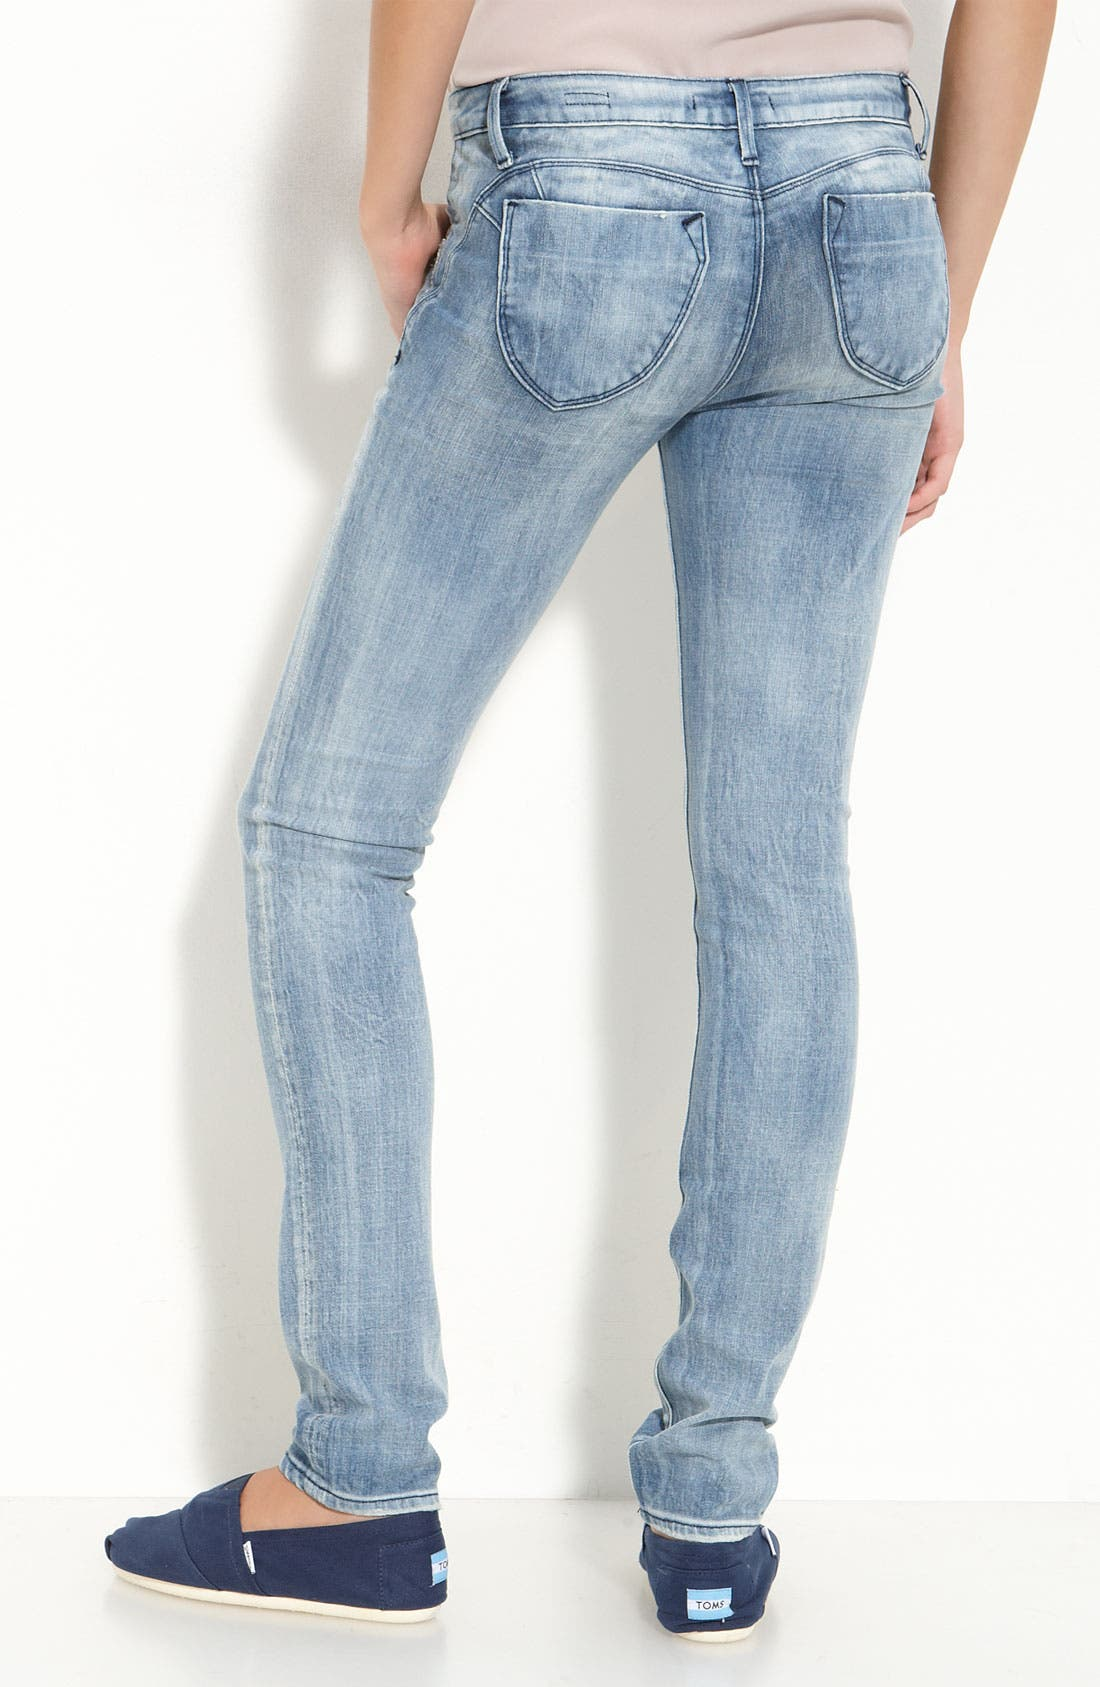 Main Image - Vigoss '88' Stretch Denim Skinny Jeans (Light Wash) (Juniors)